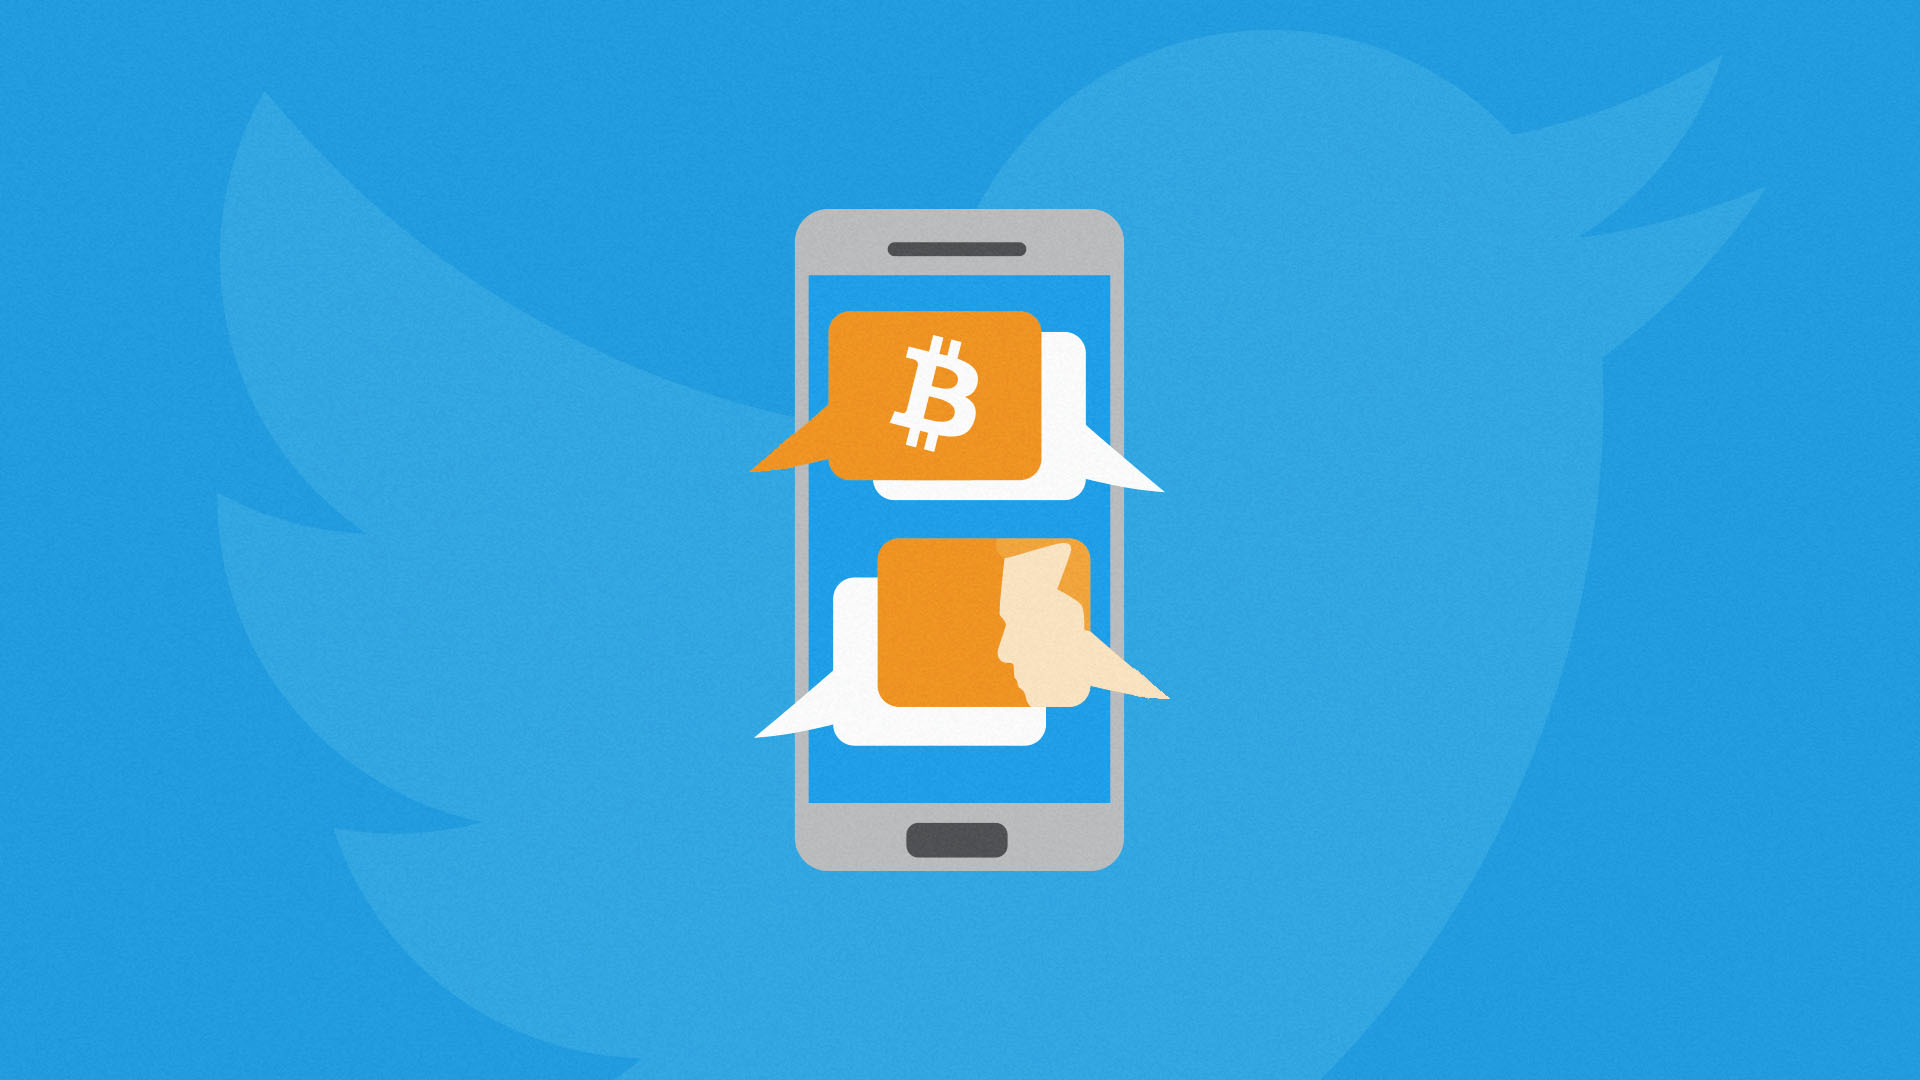 Bitcoin logo and chat bubbles on a smartphone screen with a human face representing Elon Musk